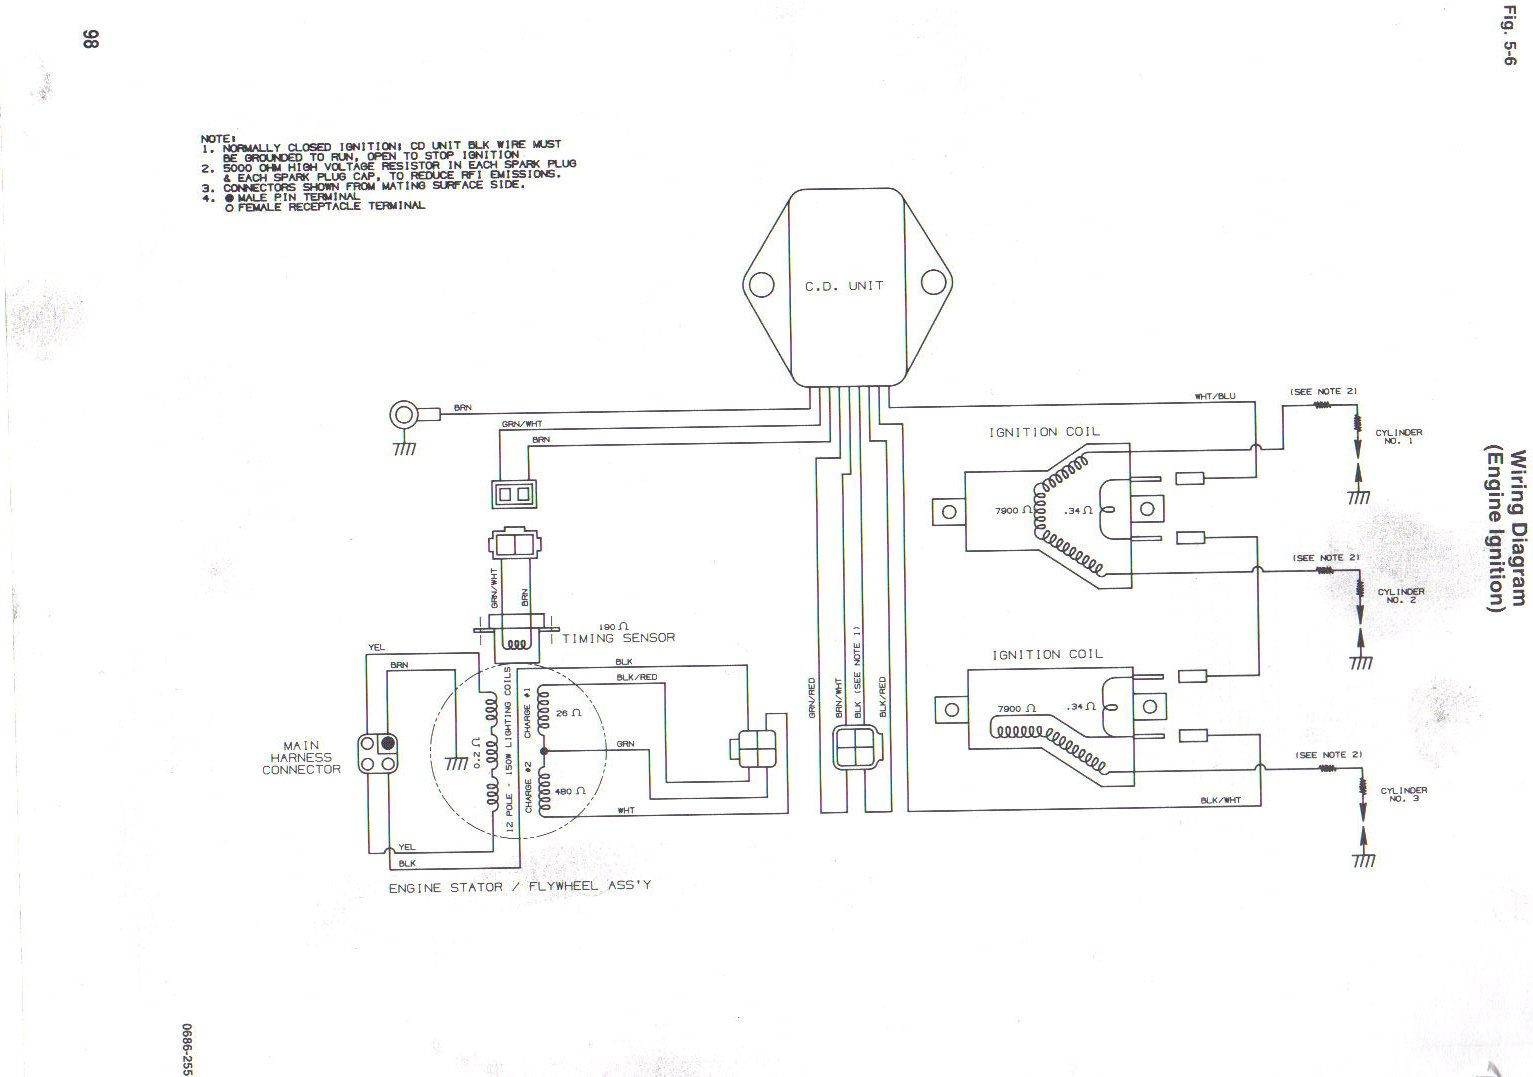 250 Wiring Diagram Dna Dual Evolv Forum Sa 2006 Arctic Cat 400 Quadrunner Image Need Help On Arcticchat Com